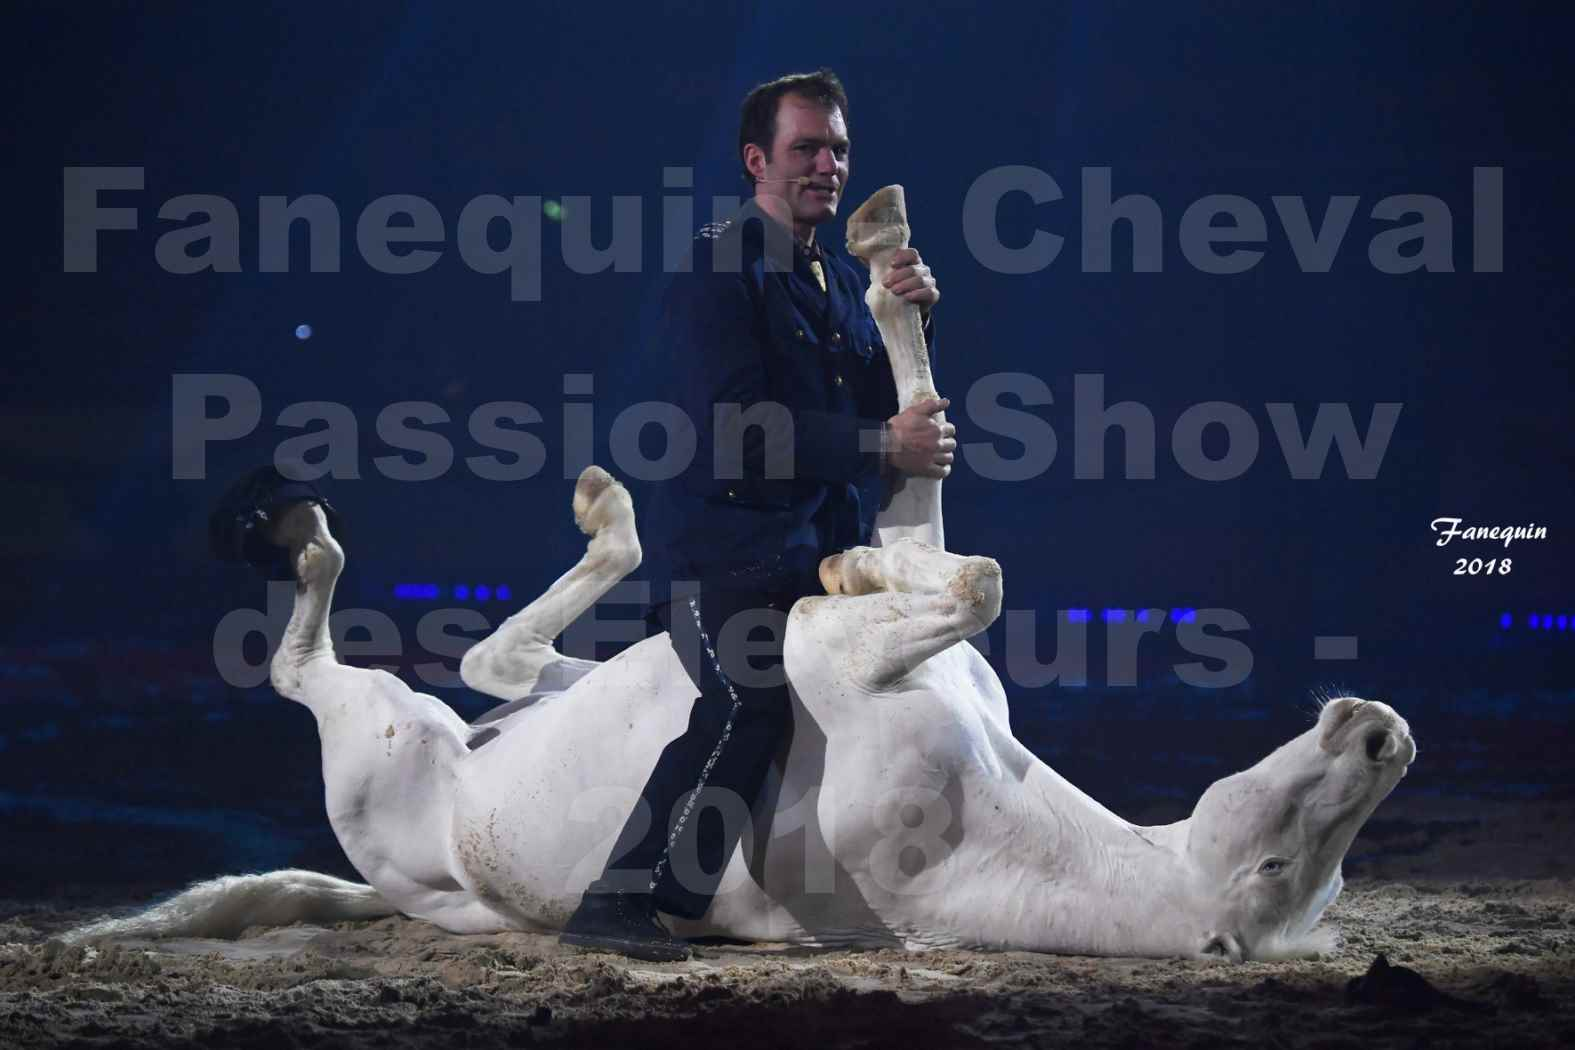 Cheval Passion 2018 - Spectacle les Crinières d'OR - Le FACTEUR 3 - 07